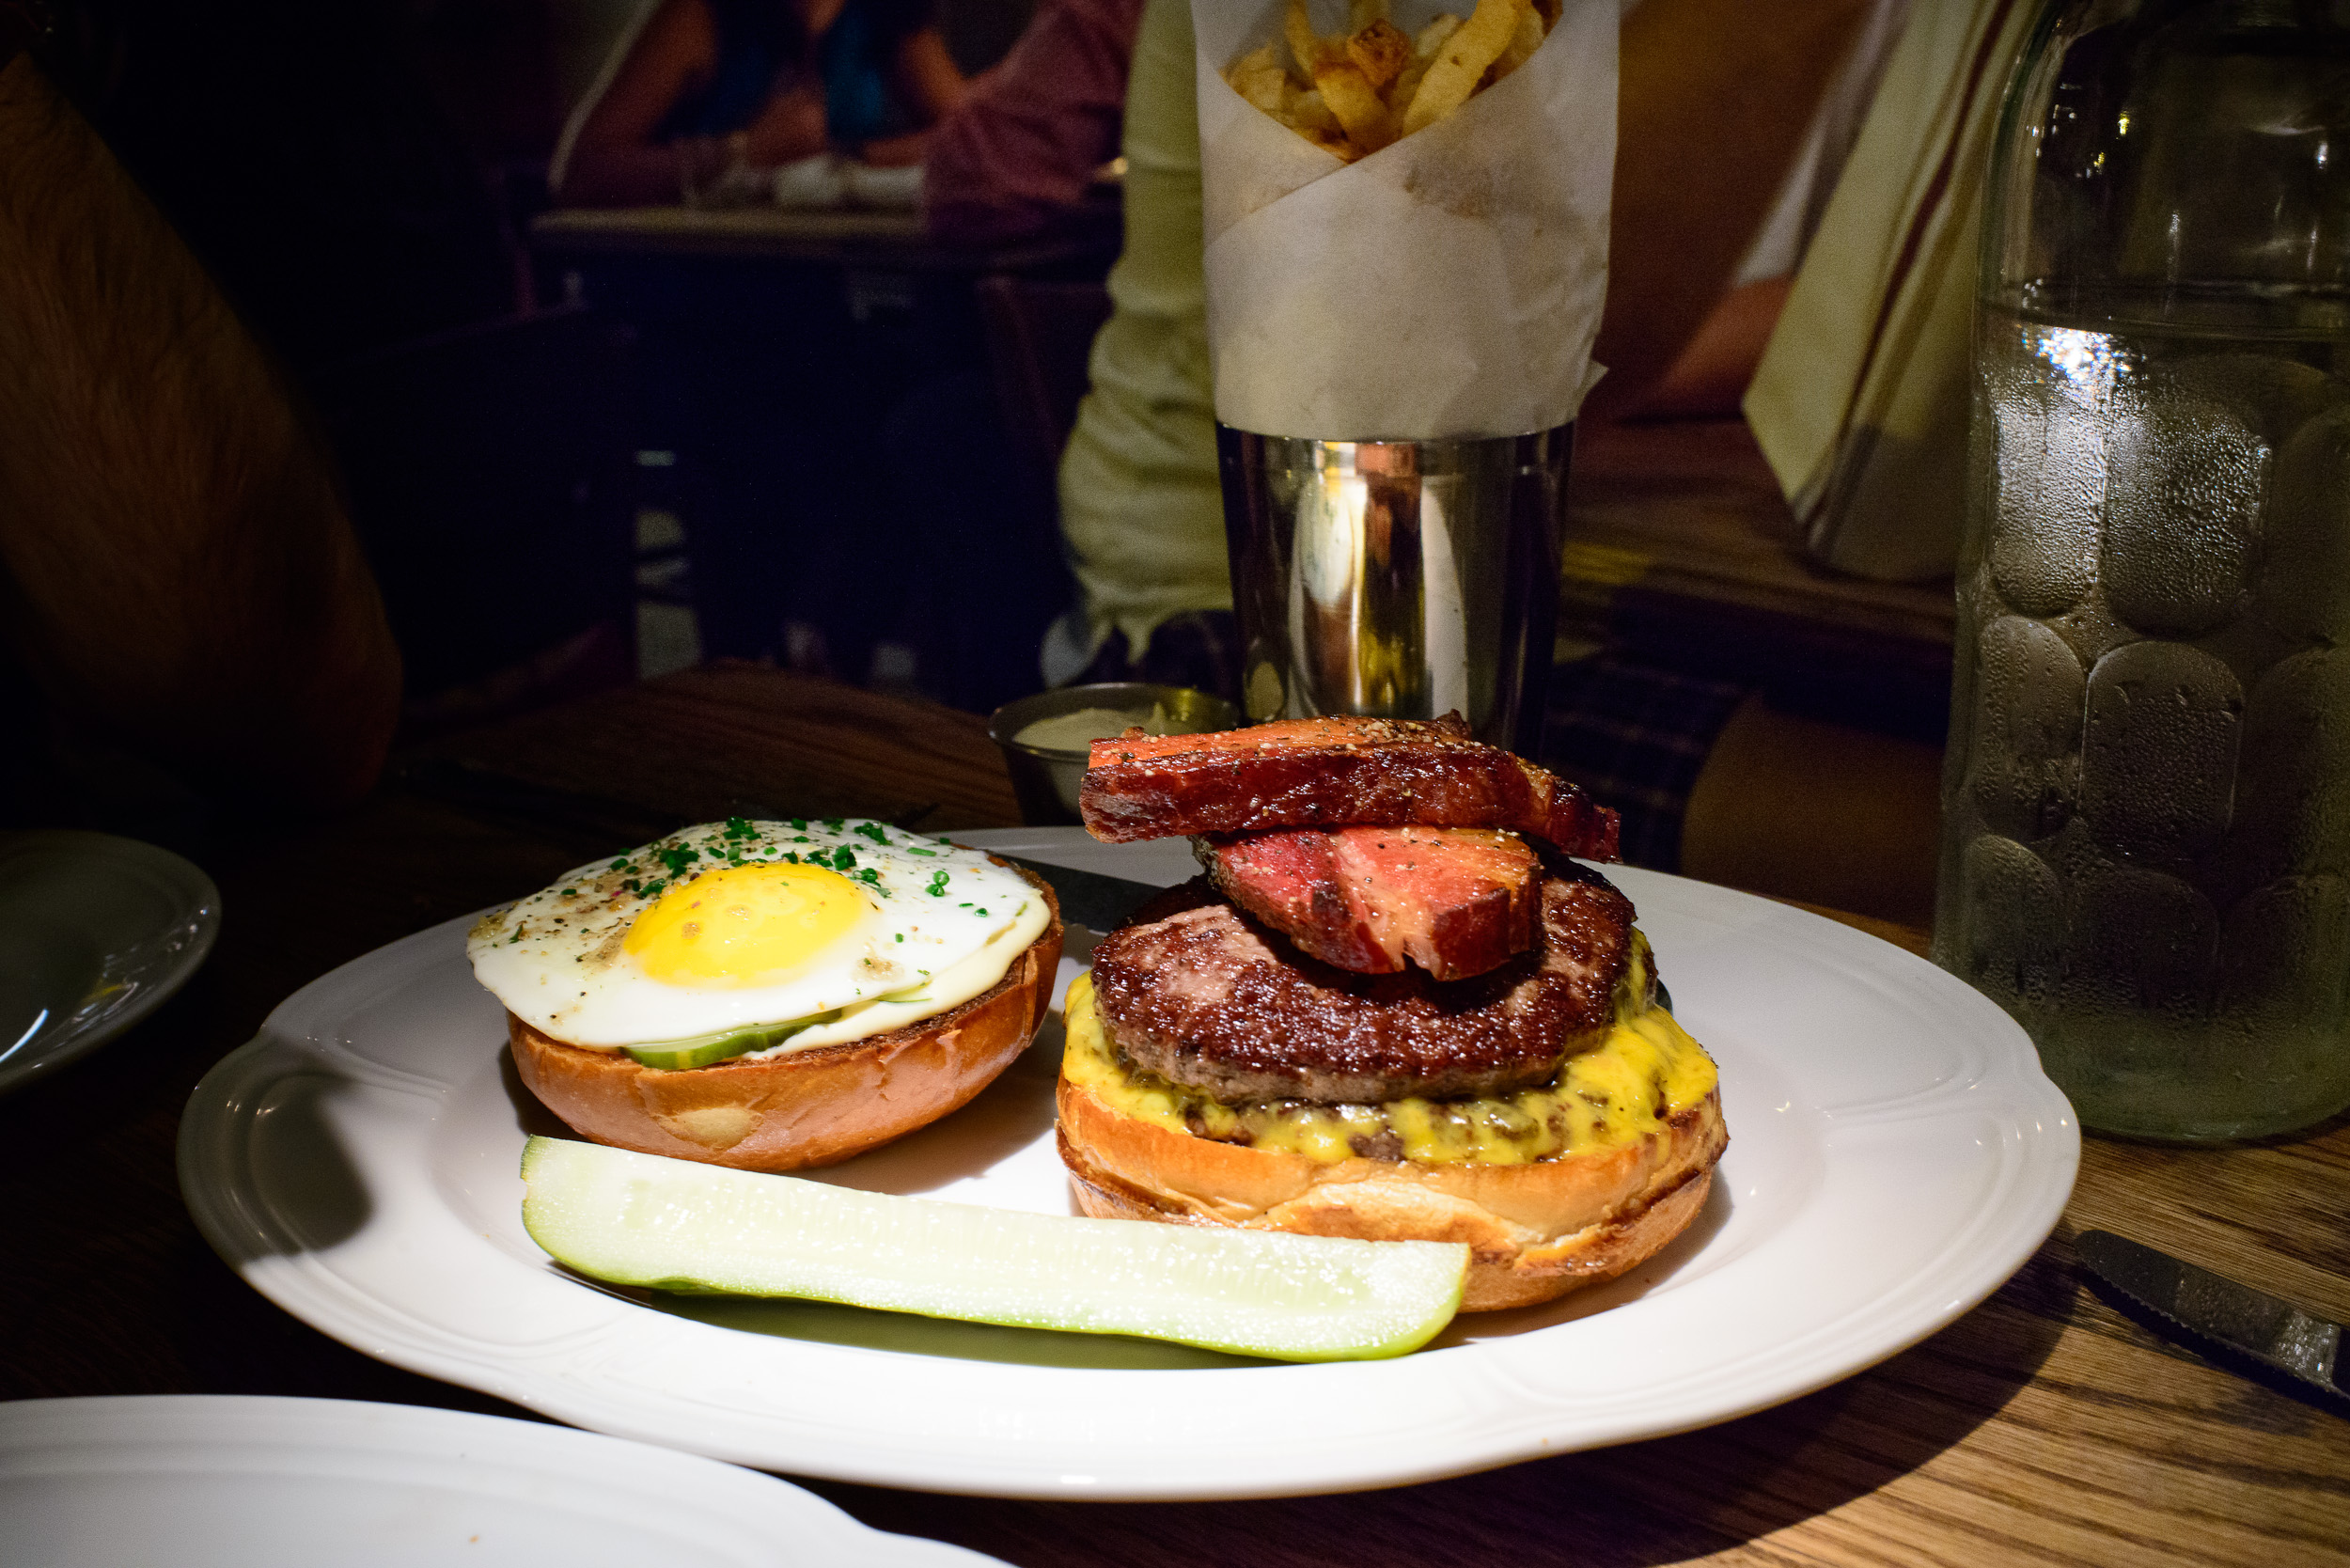 Double cheese burger with fried bacon and egg ($11.95)